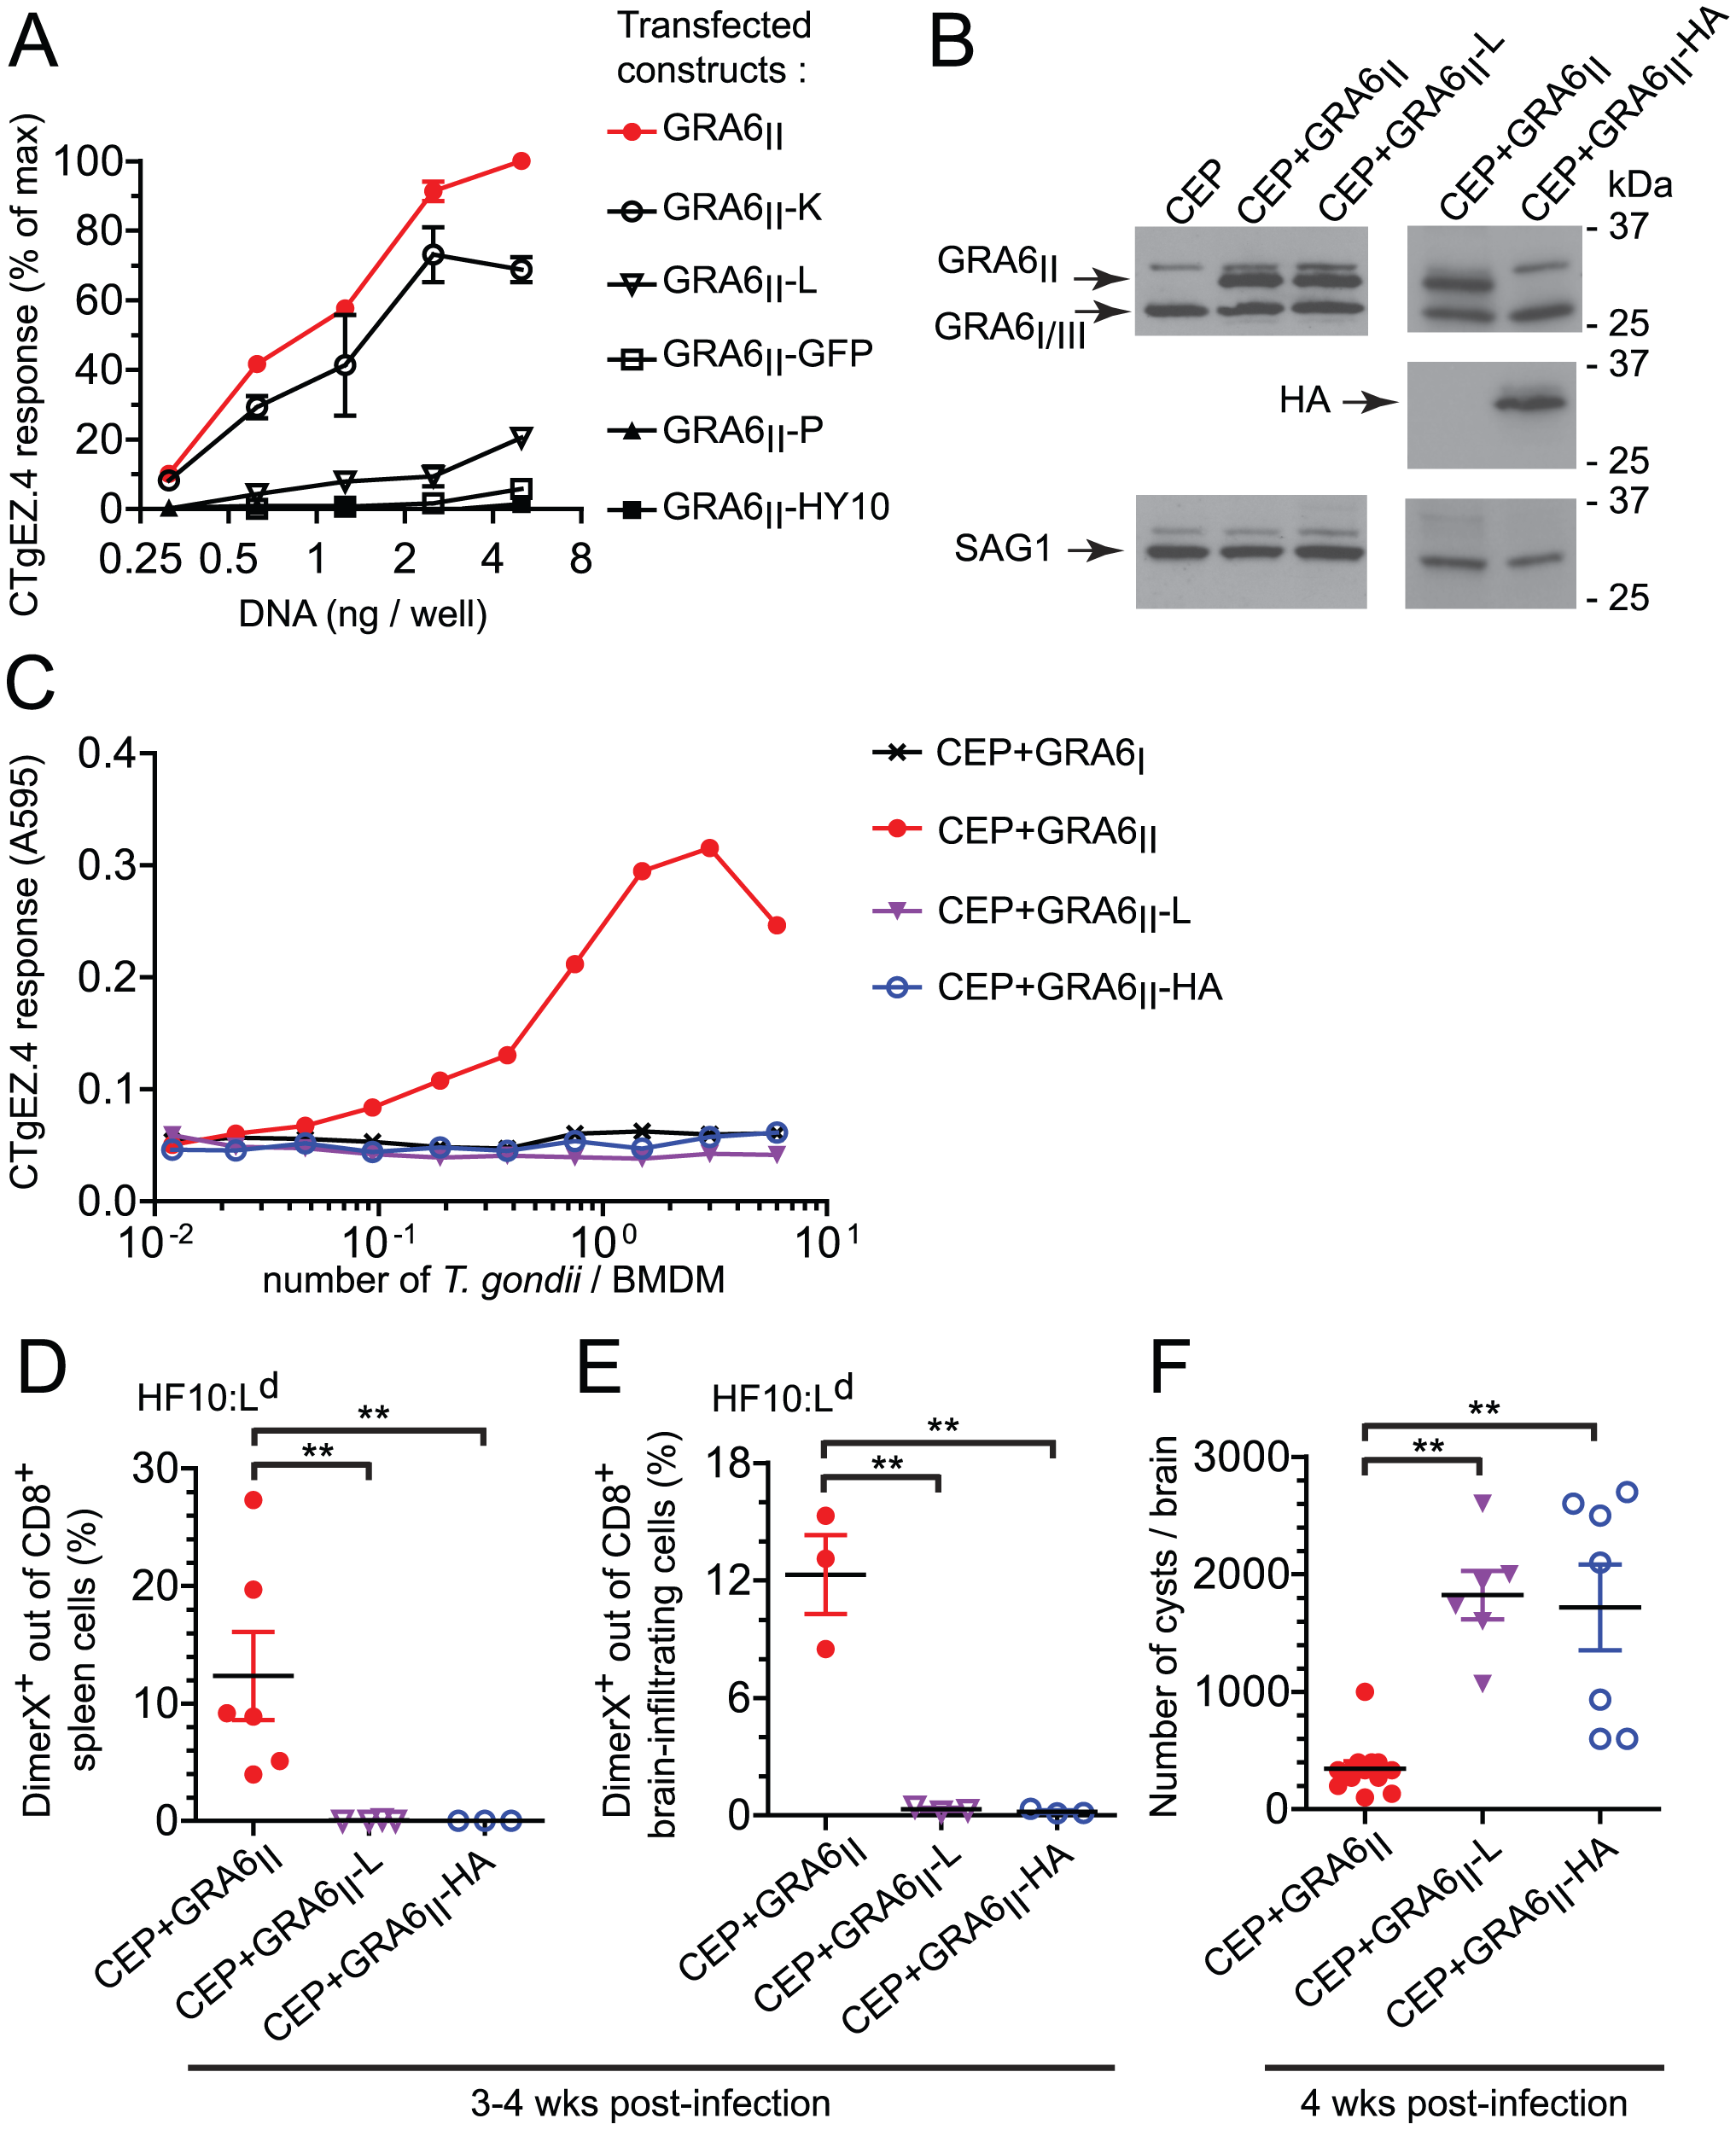 Optimal presentation and parasite control depend on the location of HF10 at the C-terminus of GRA6.